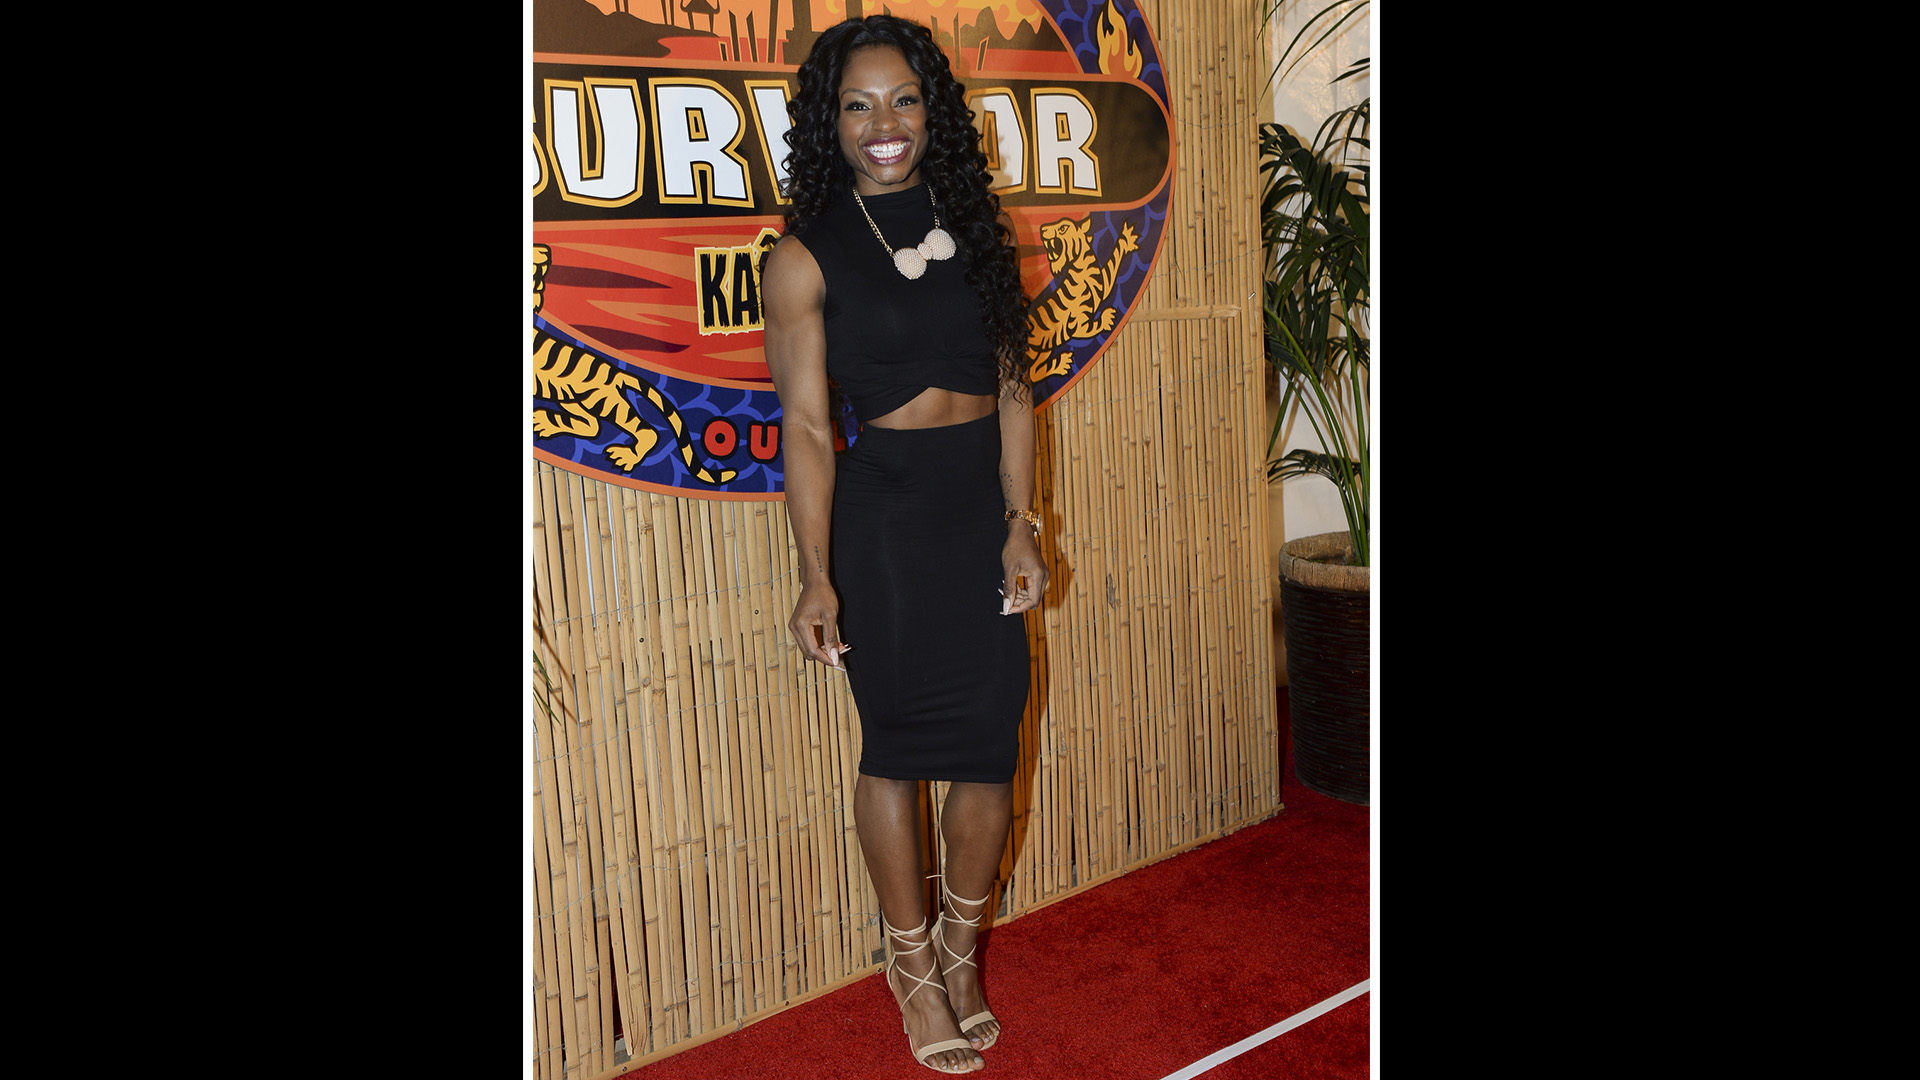 Cleaned-up castaway: Cydney Gillon